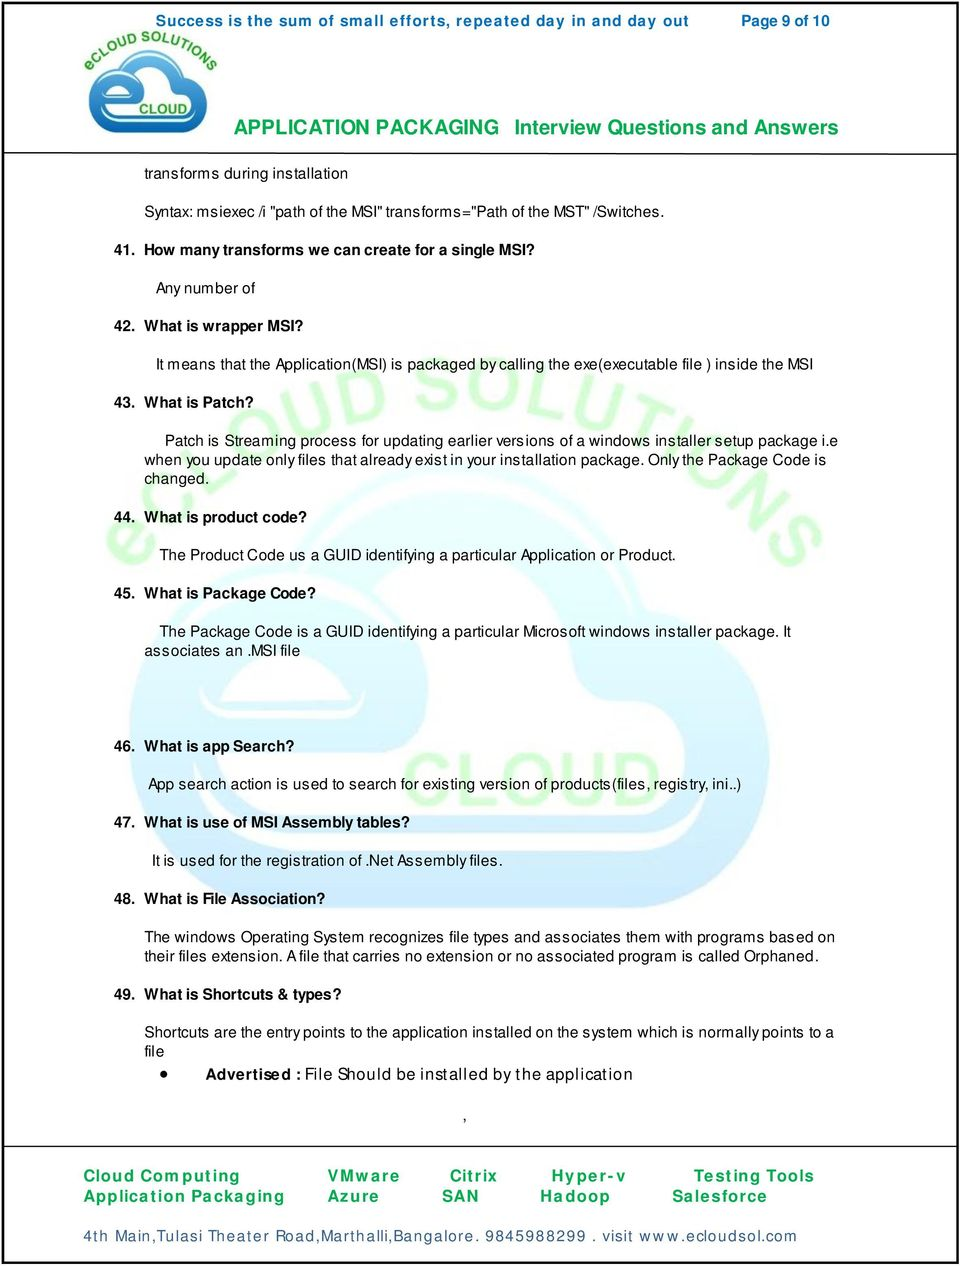 APPLICATION PACKAGING Interview Questions and Answers - PDF